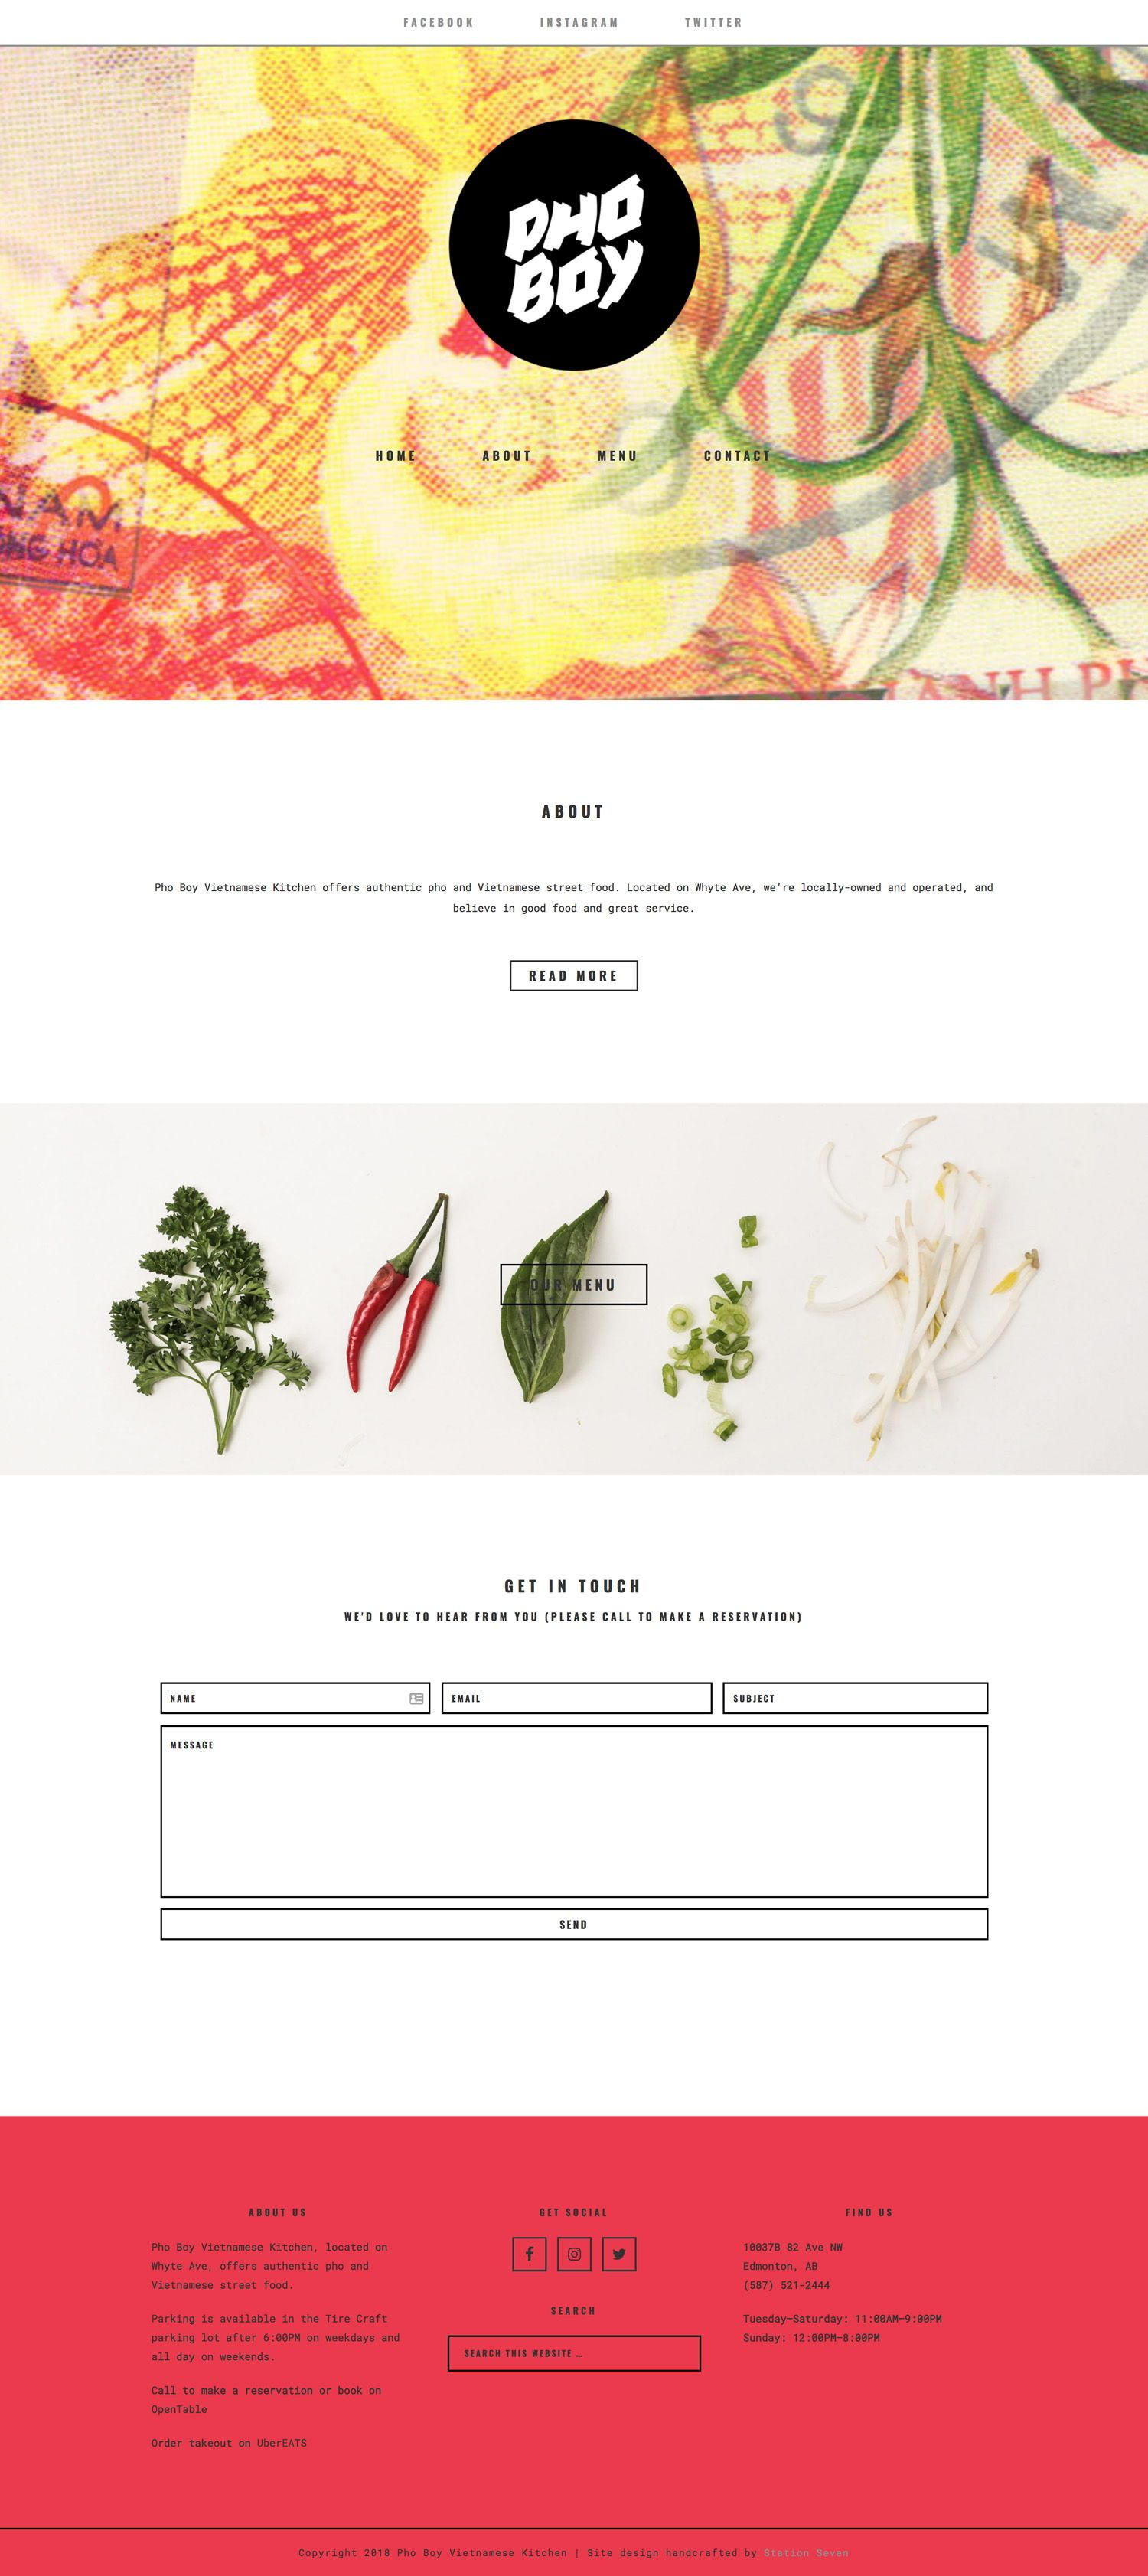 Pho Boy Restaurant Keeps Their Website Simple Minimalist And Absolutely Delicious Looking Wordpress Website Design Portfolio Website Design Restaurant Design